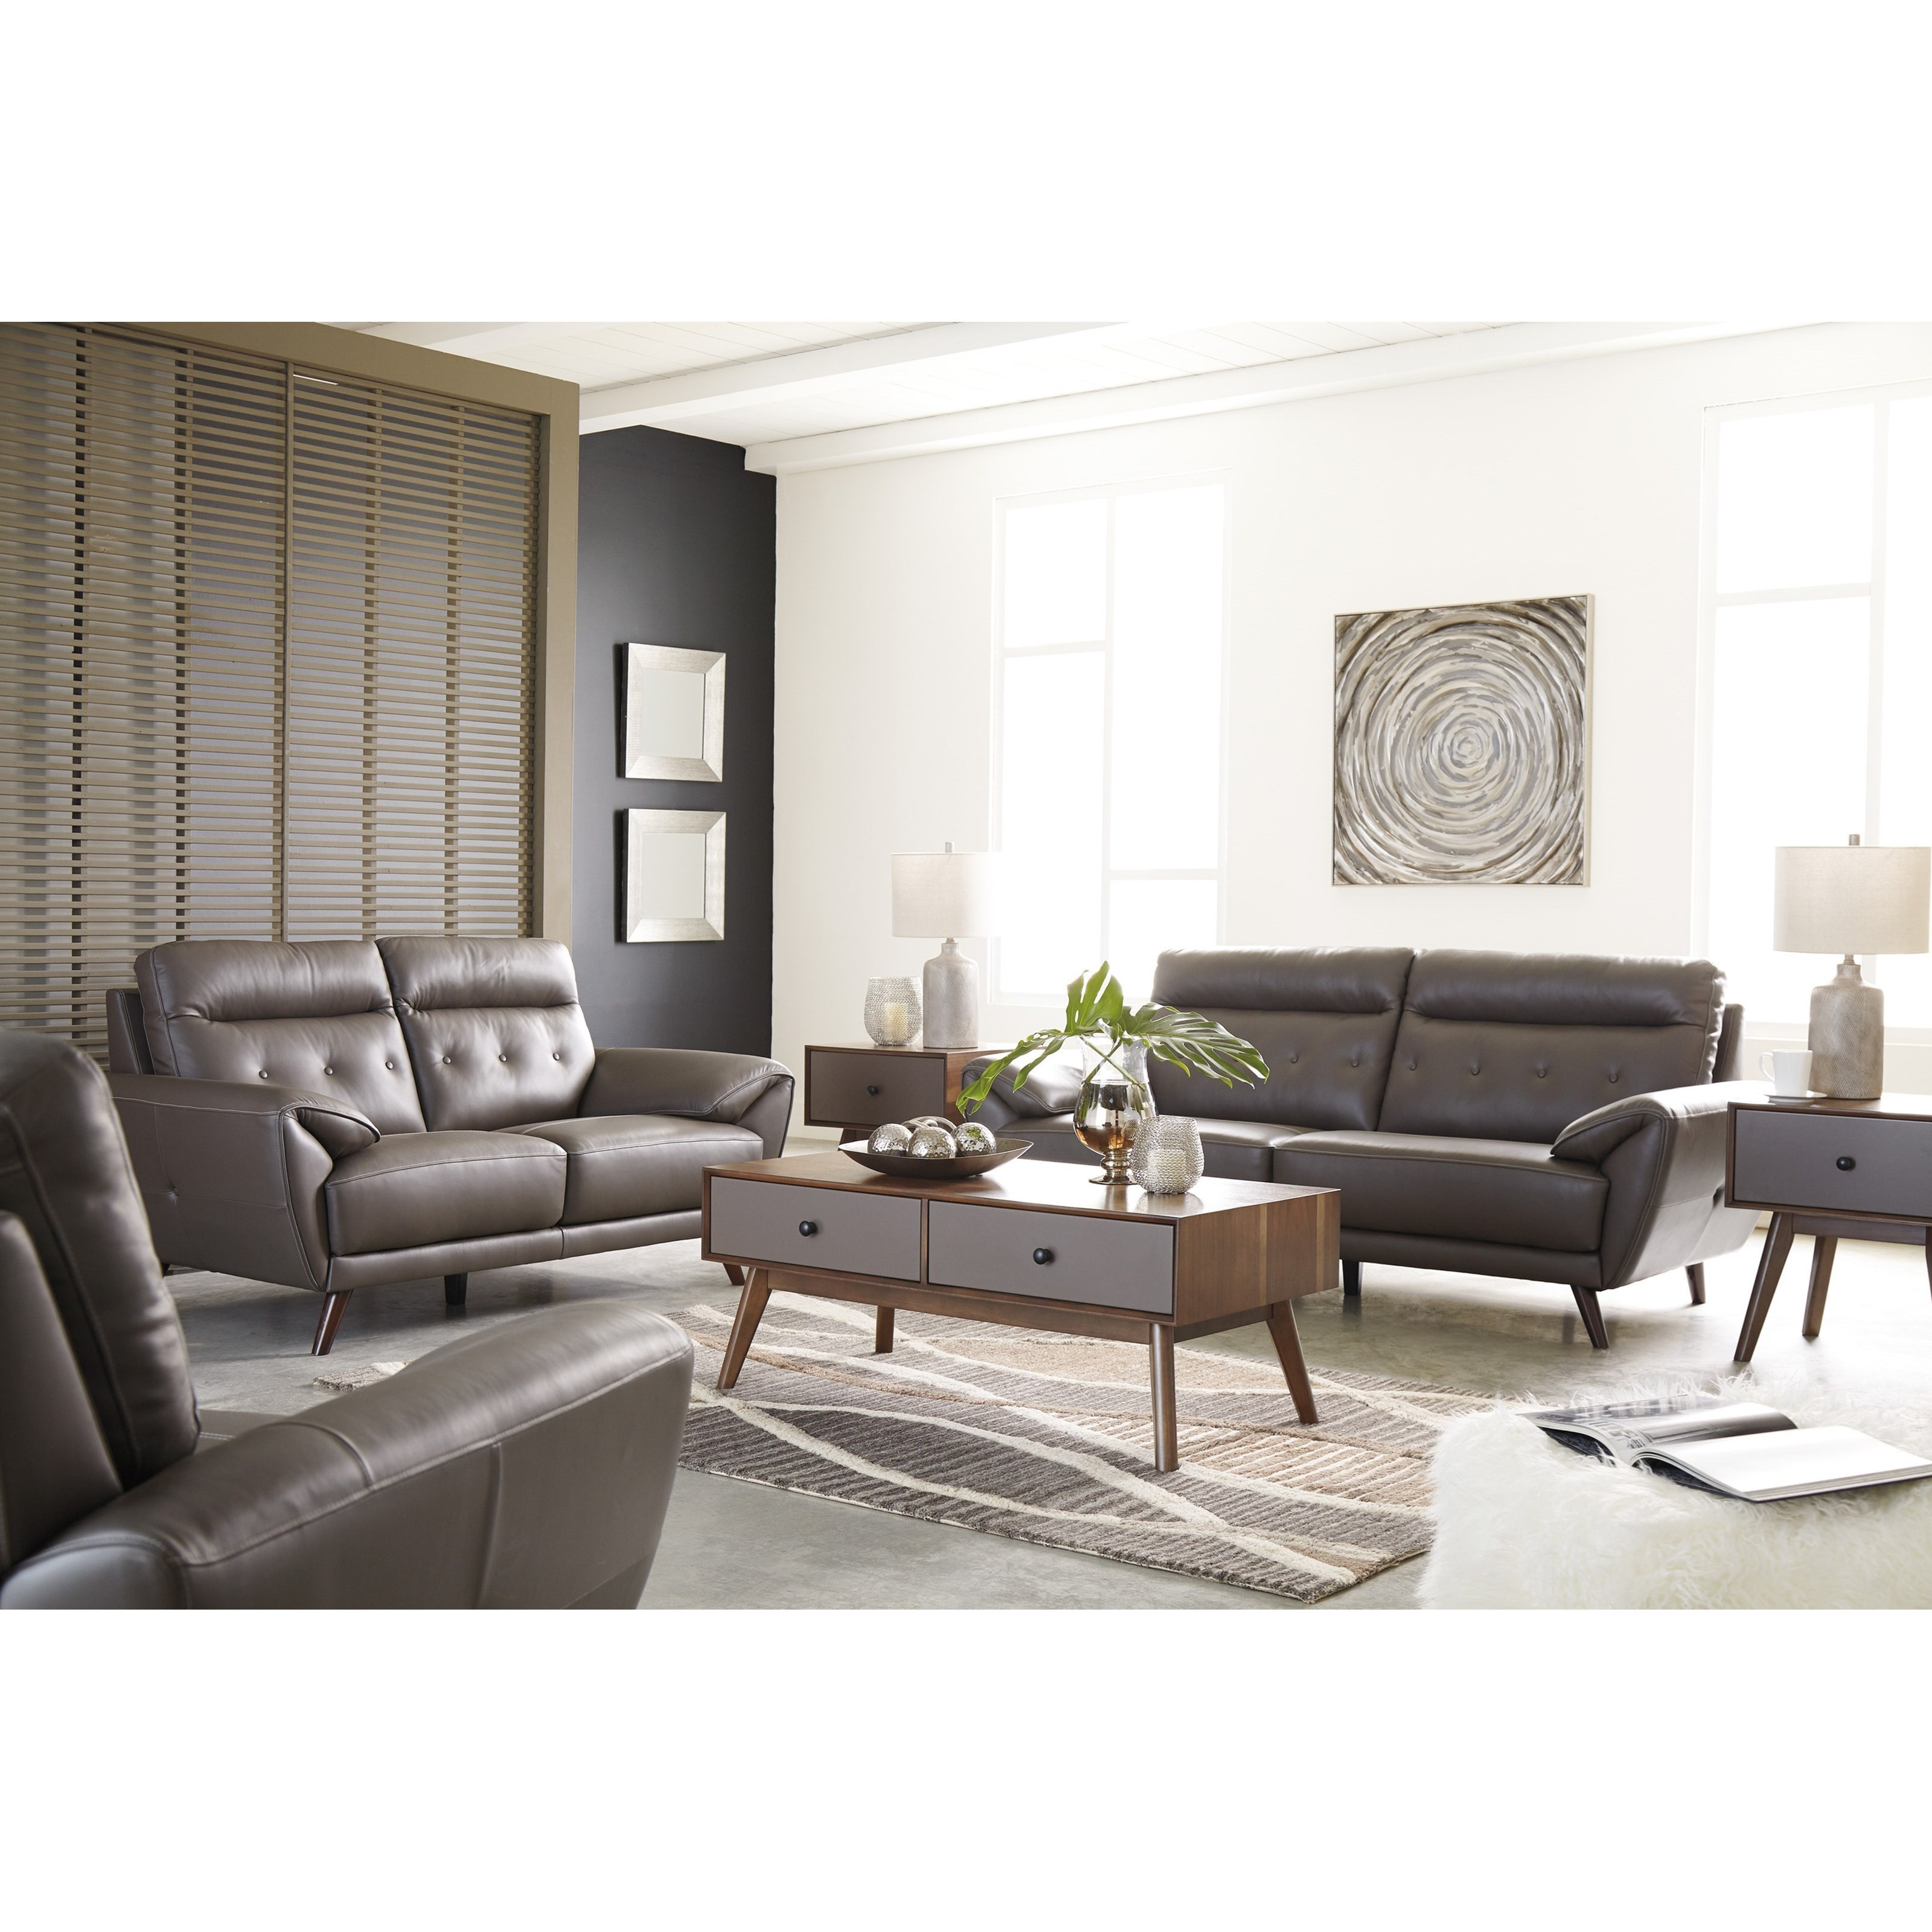 Superieur Signature Design By Ashley Sissoko Living Room Group